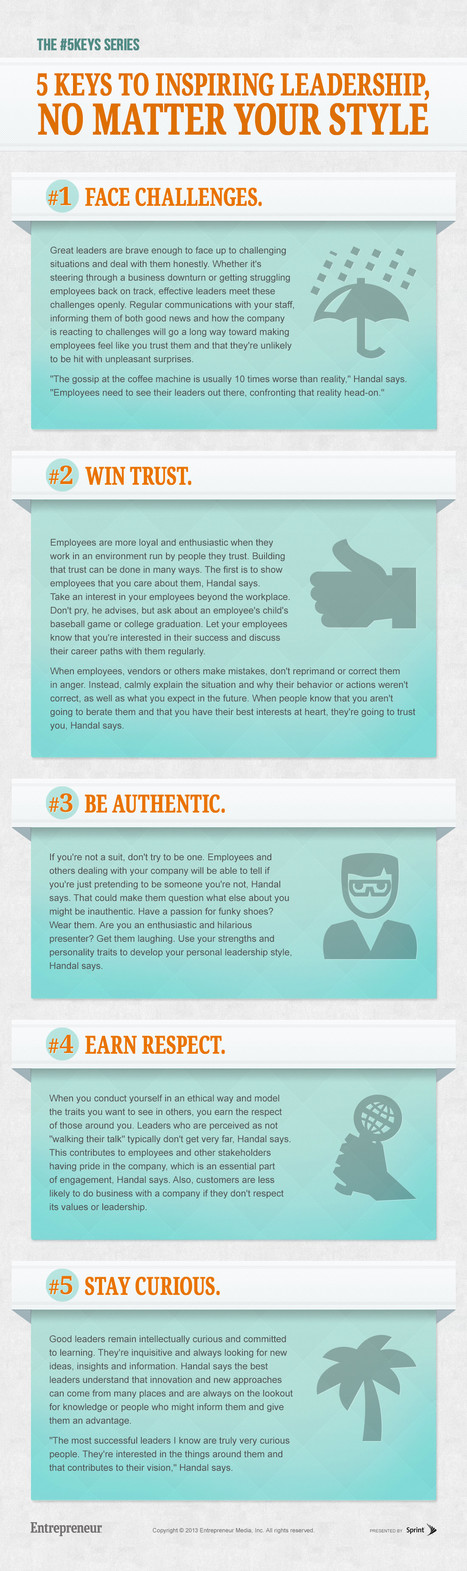 5 Keys to Inspiring Leadership, No Matter Your Style [Infographic] | leadership 3.0 | Scoop.it